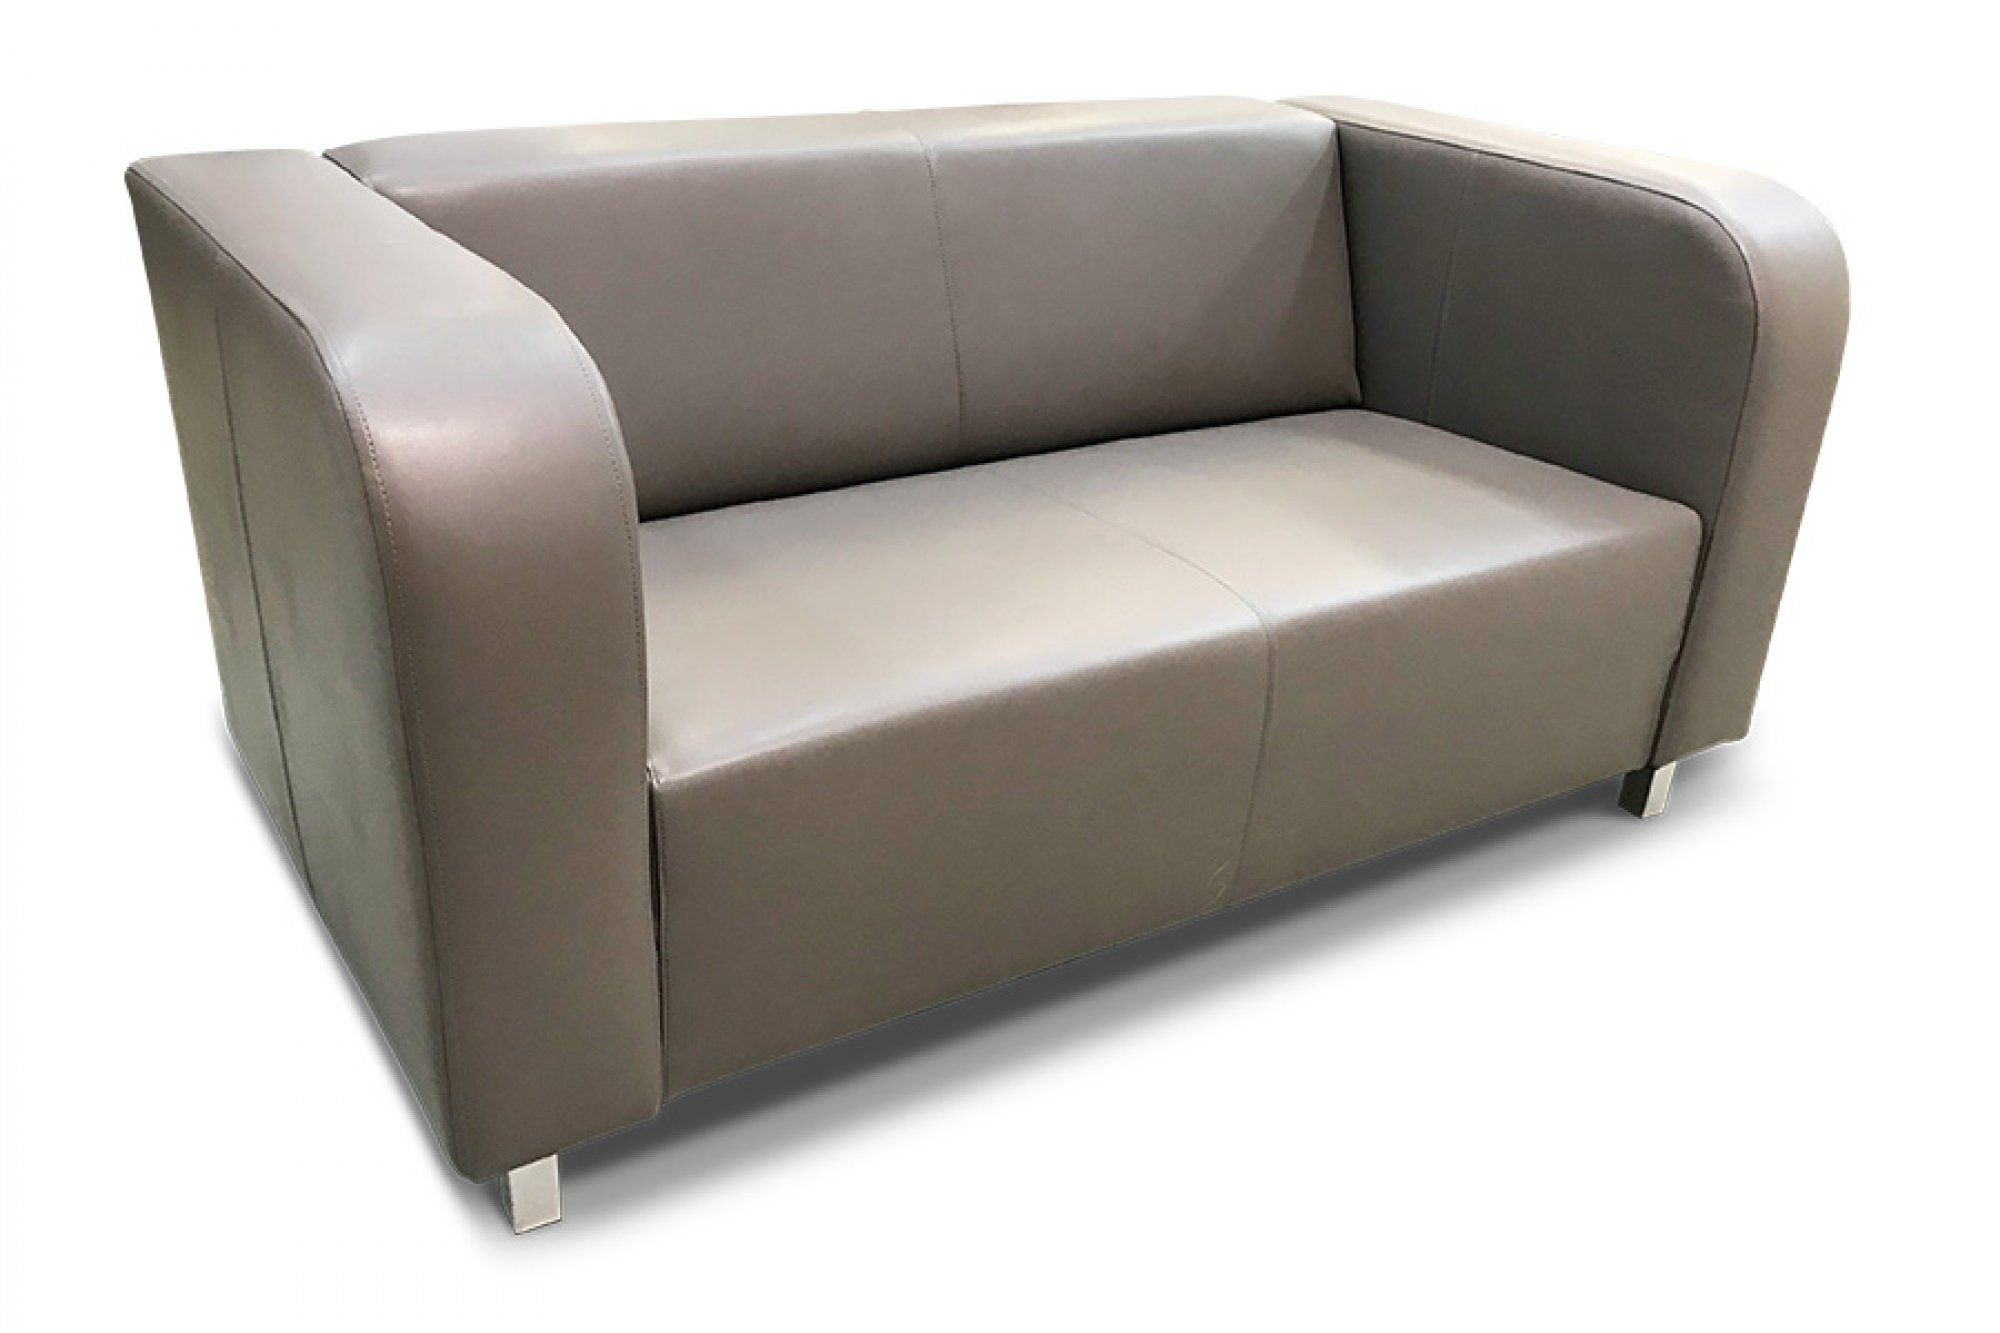 sofa_office_1